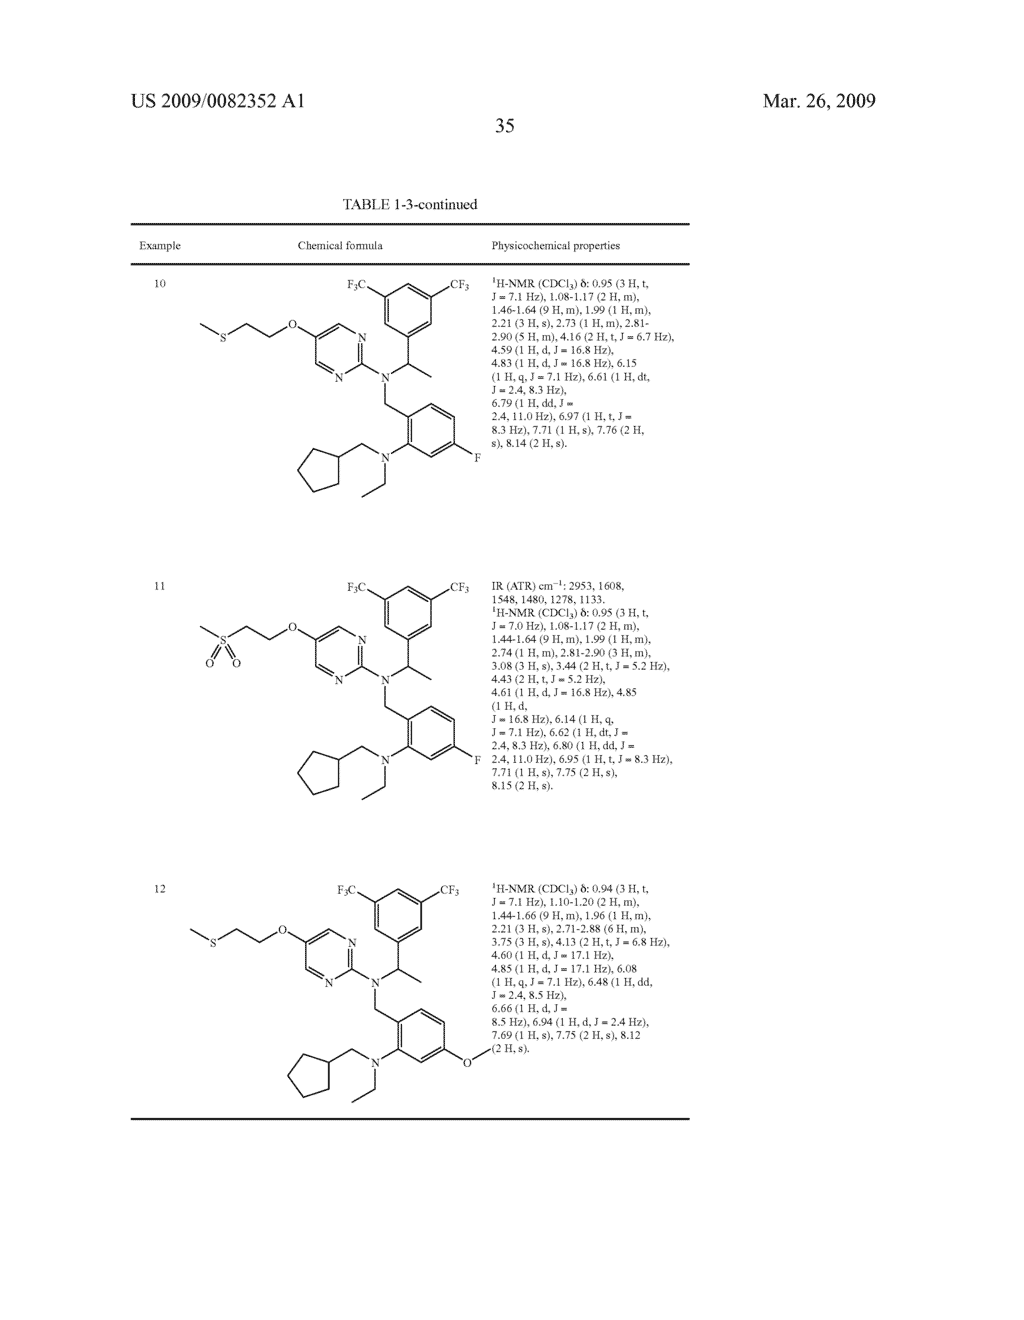 NOVEL PYRIMIDINE COMPOUND HAVING DIBENZYLAMINE STRUCTURE AND MEDICAMENT COMPRISING THE SAME - diagram, schematic, and image 37